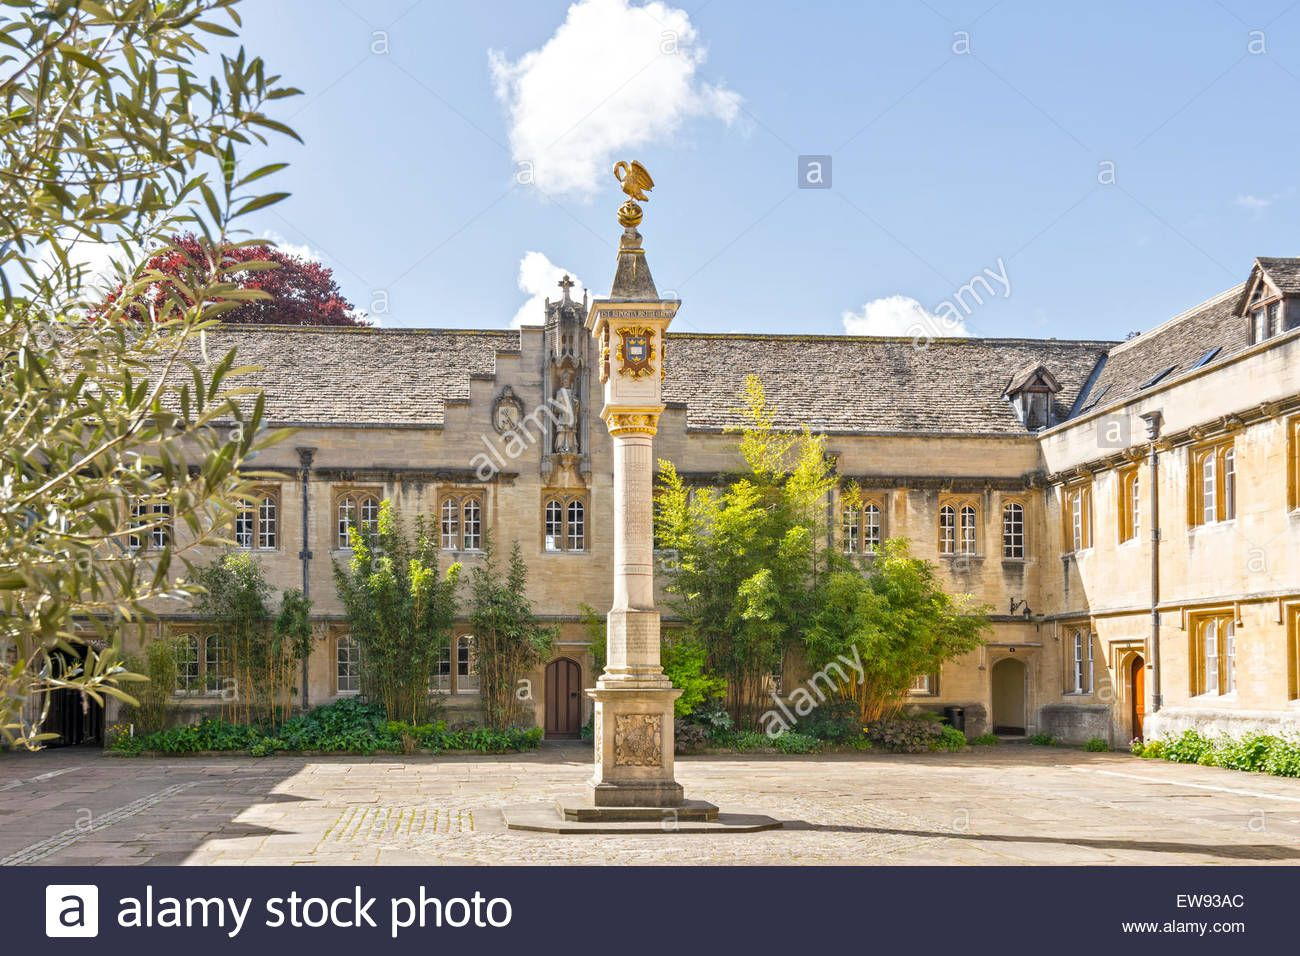 Oxford City Corpus Christi College And The Perpetual